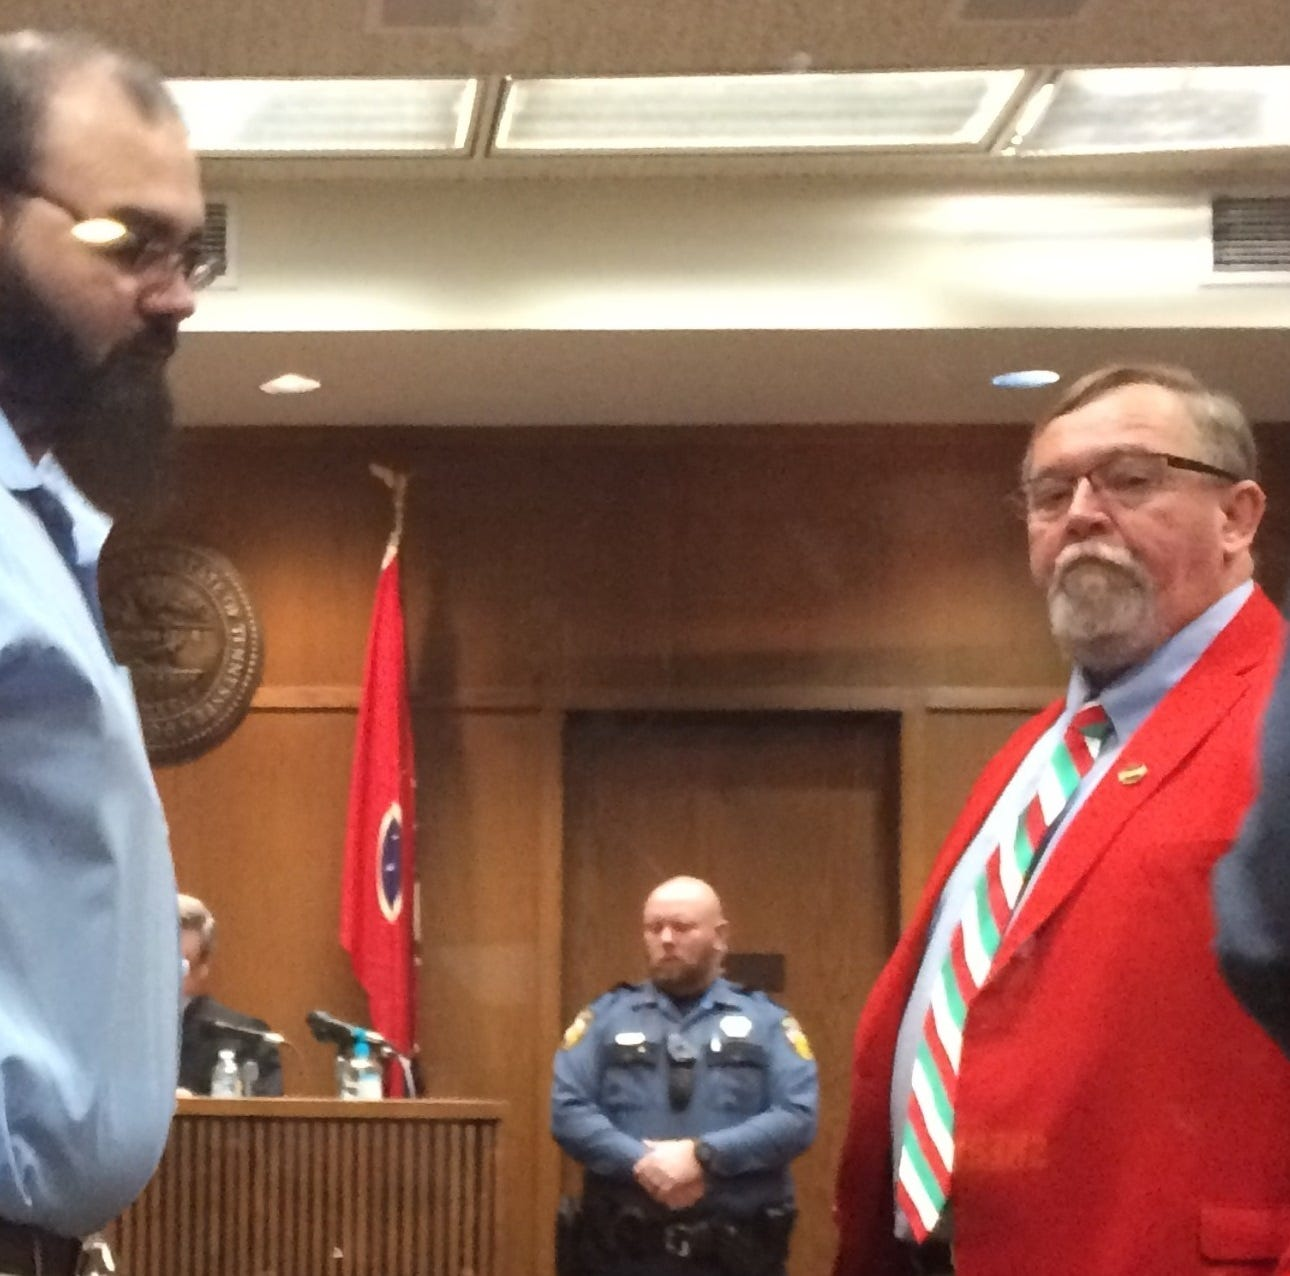 Steven Wiggins, charged in Sgt. Baker death, loses attorney Jake Lockert